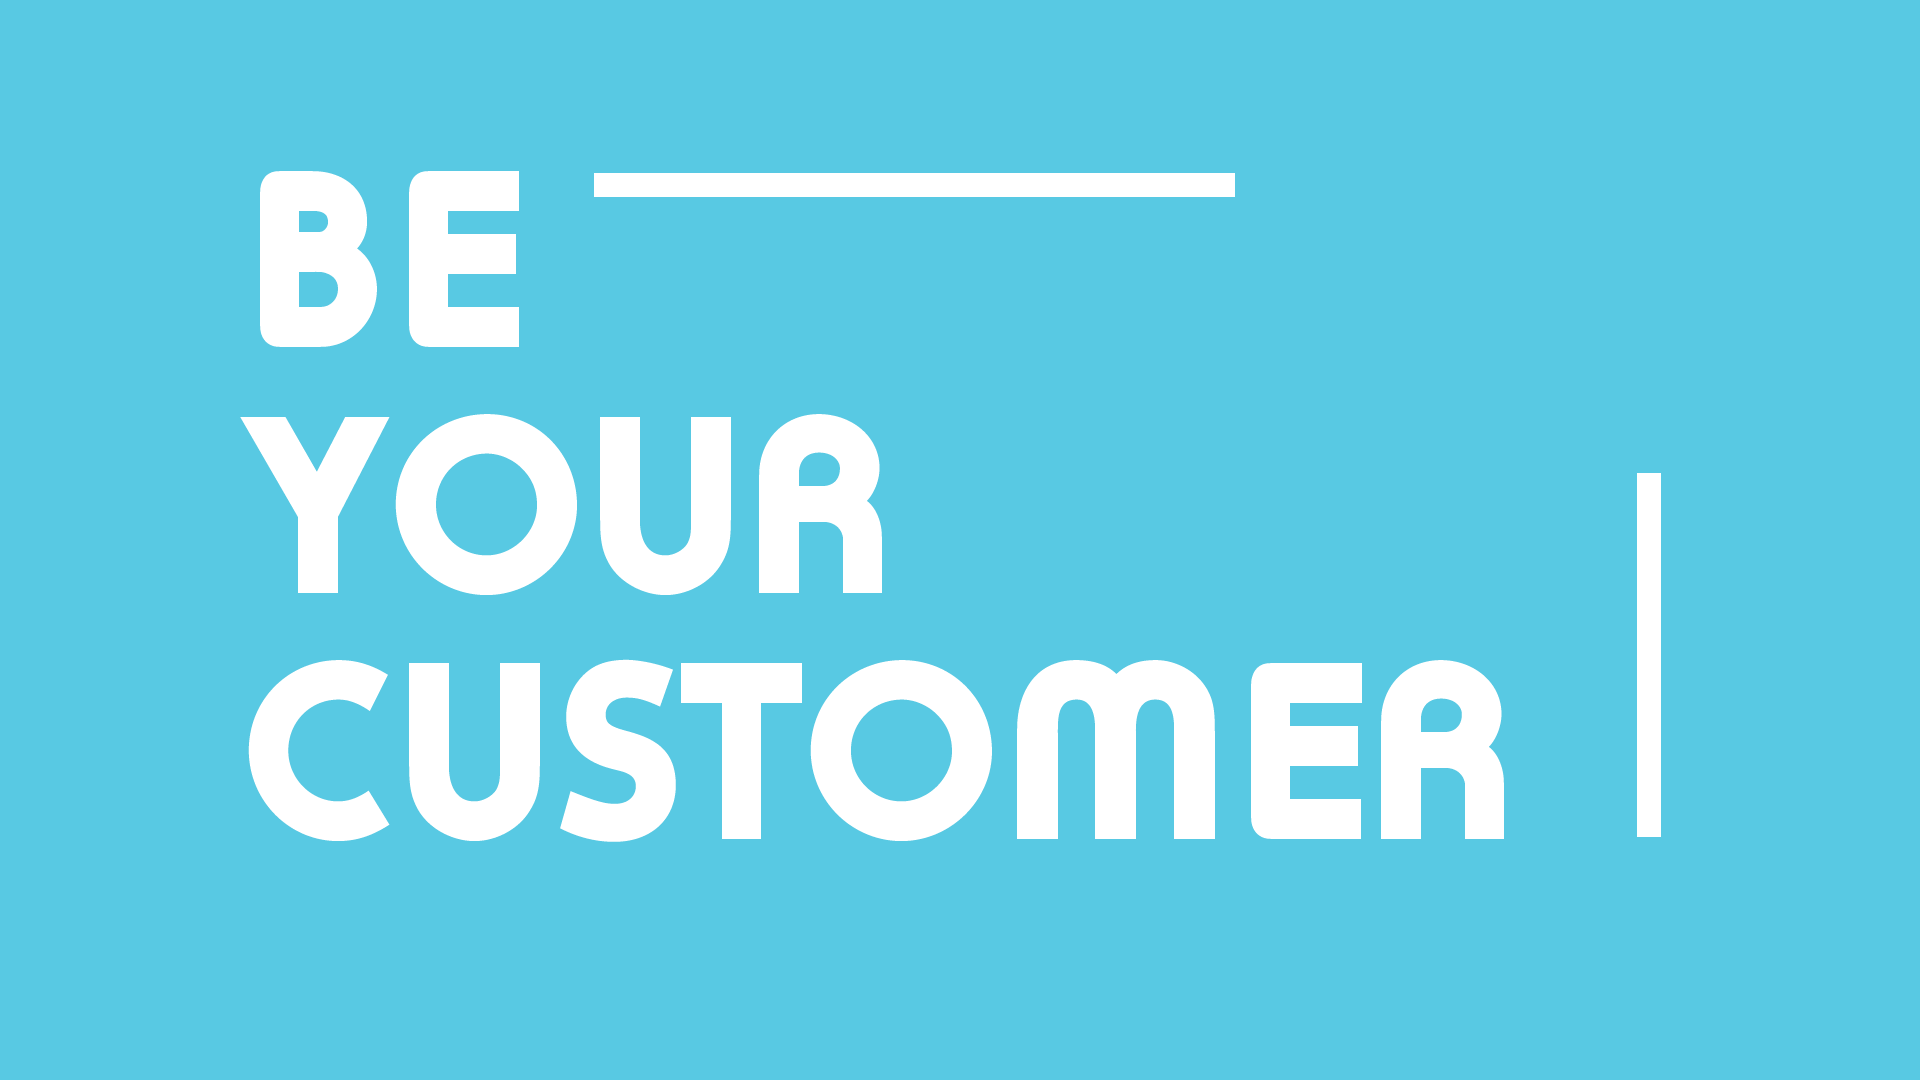 Cope Digital Agency - Be your customer